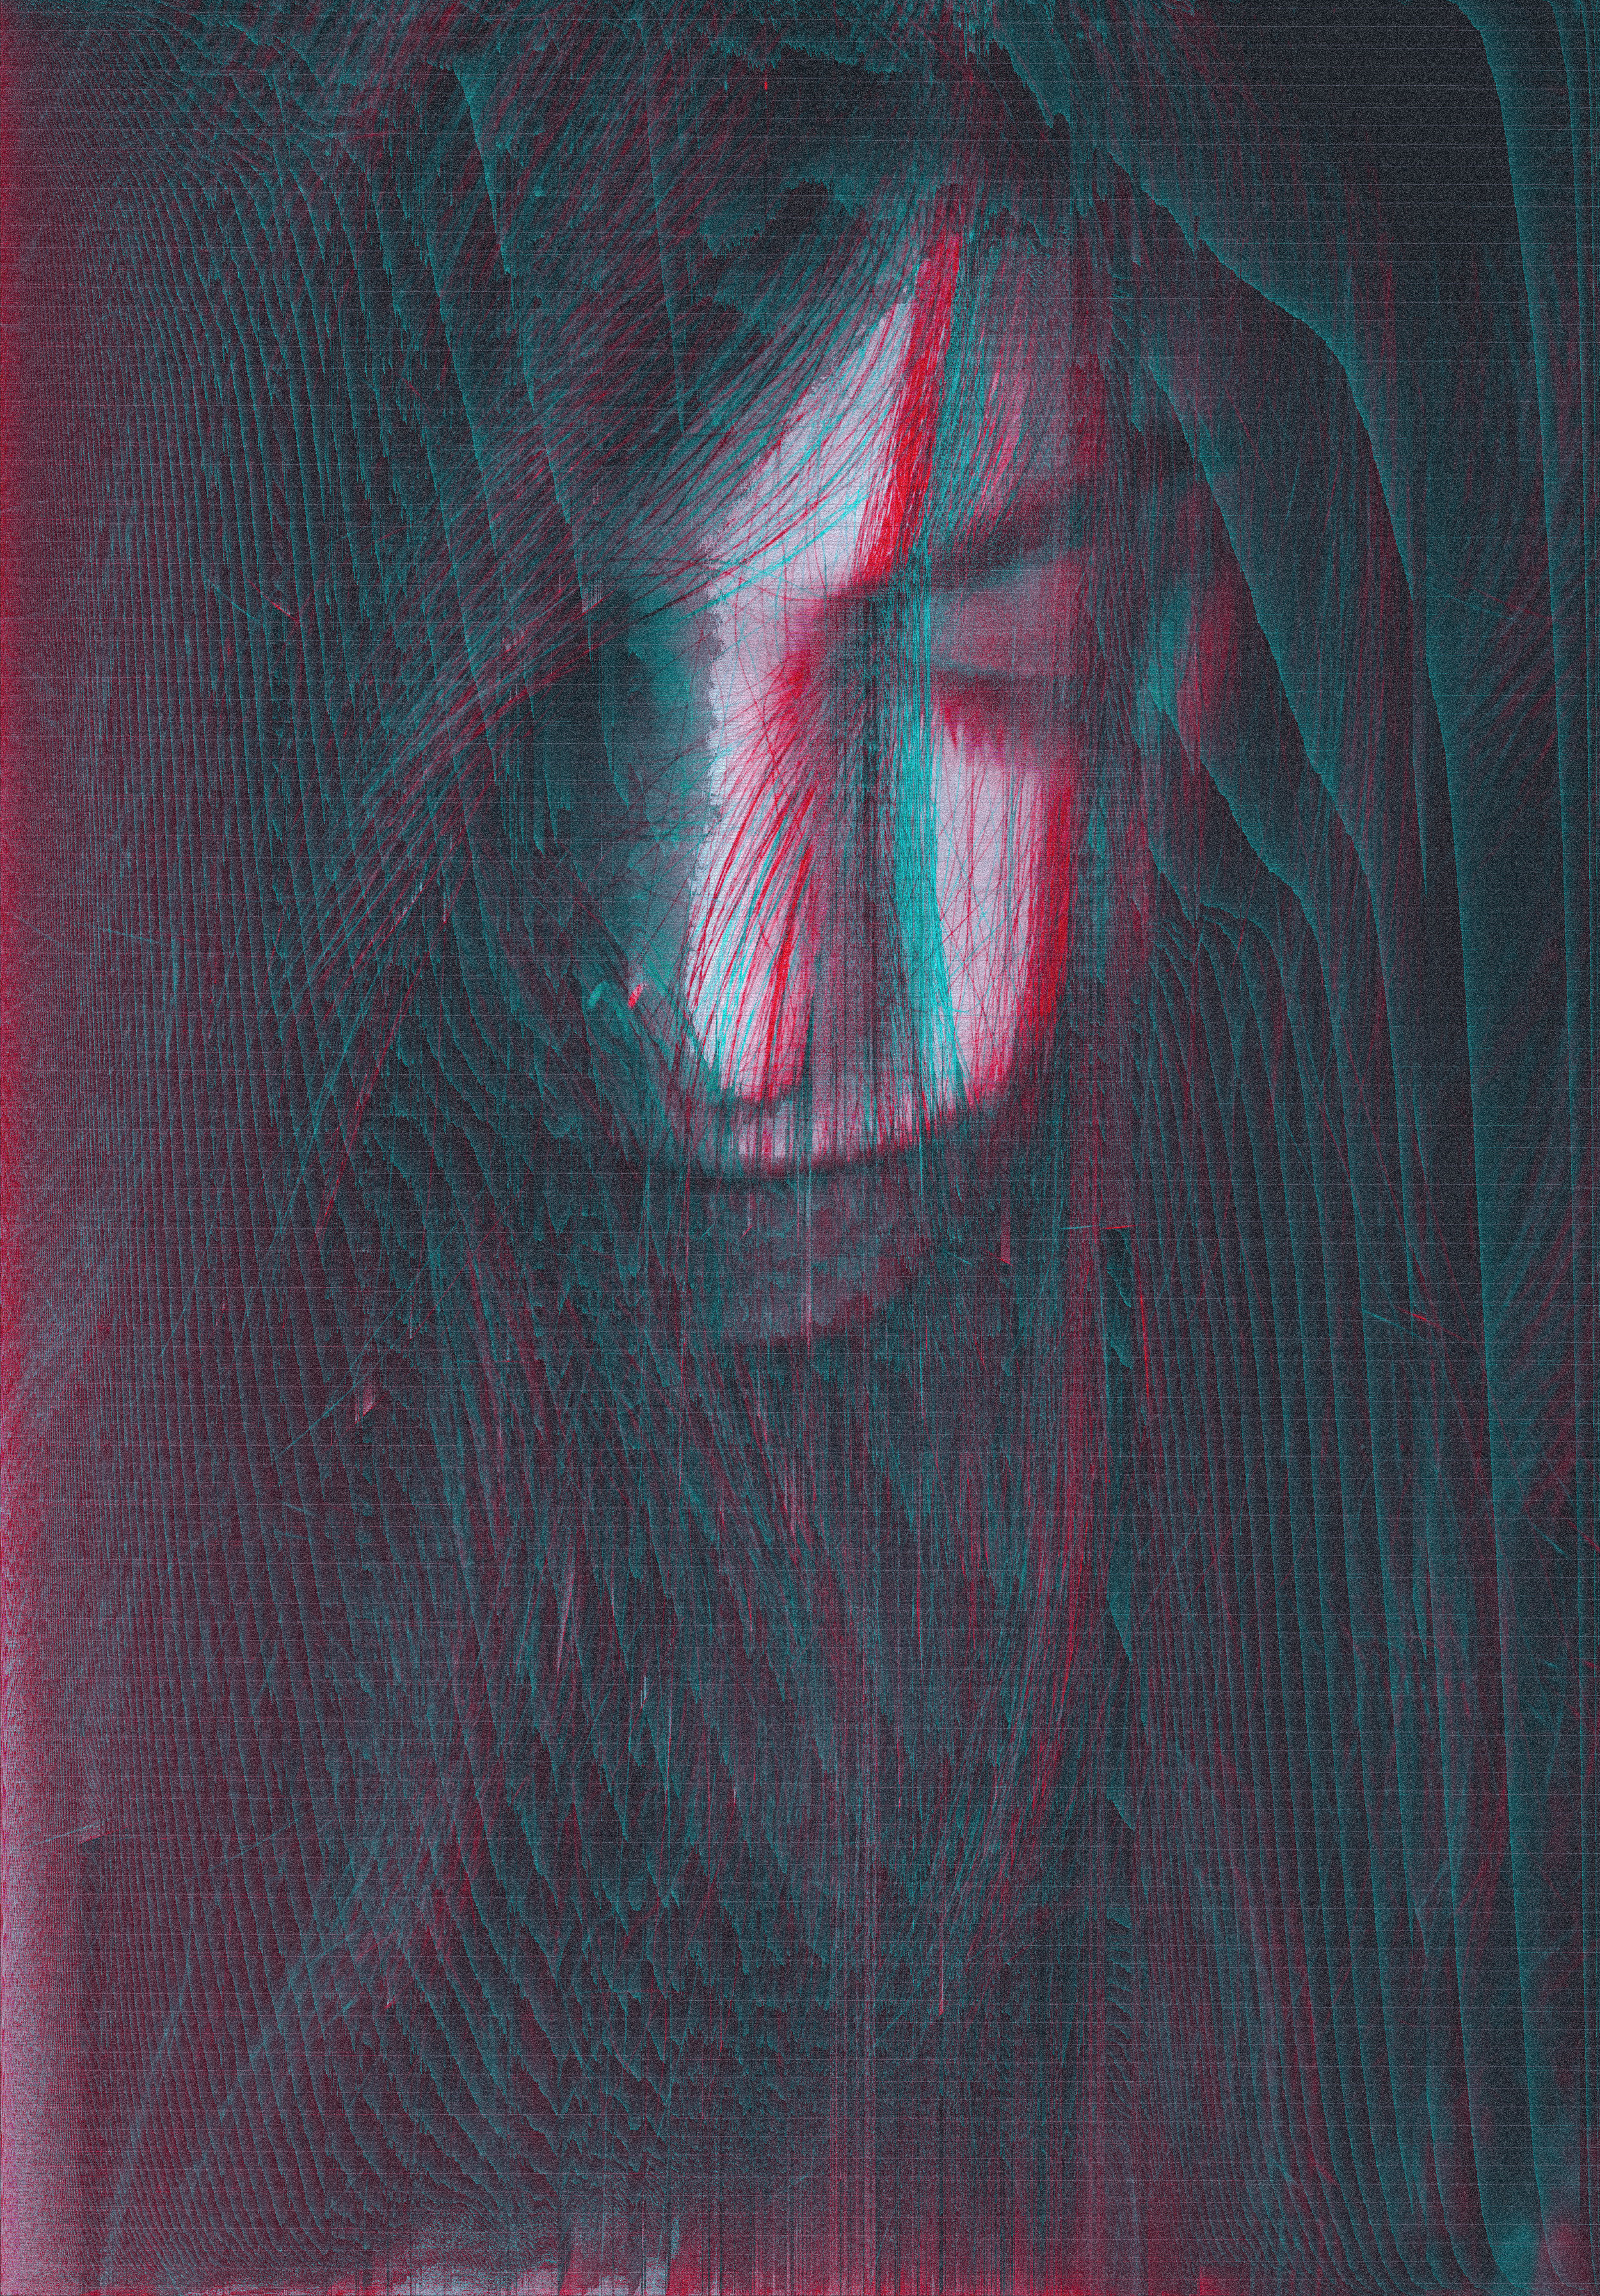 anaglych_2.1_11